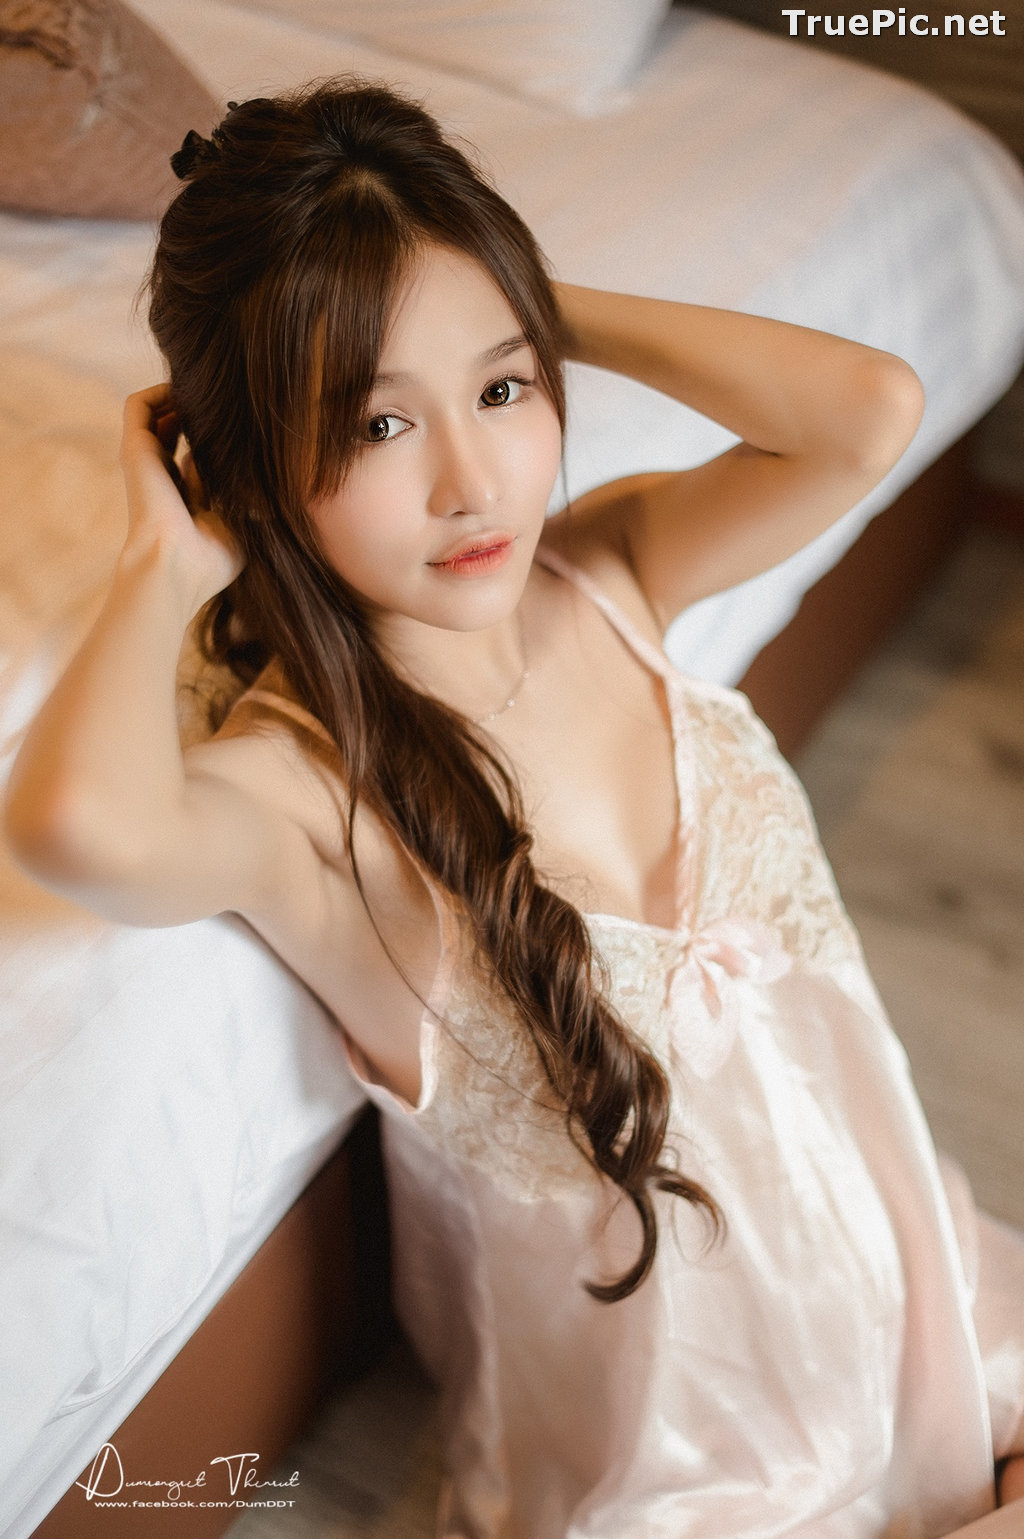 Image Thailand Model - Patcharaporn Chaopitakwong - Cute Girl Pajamas - TruePic.net - Picture-7